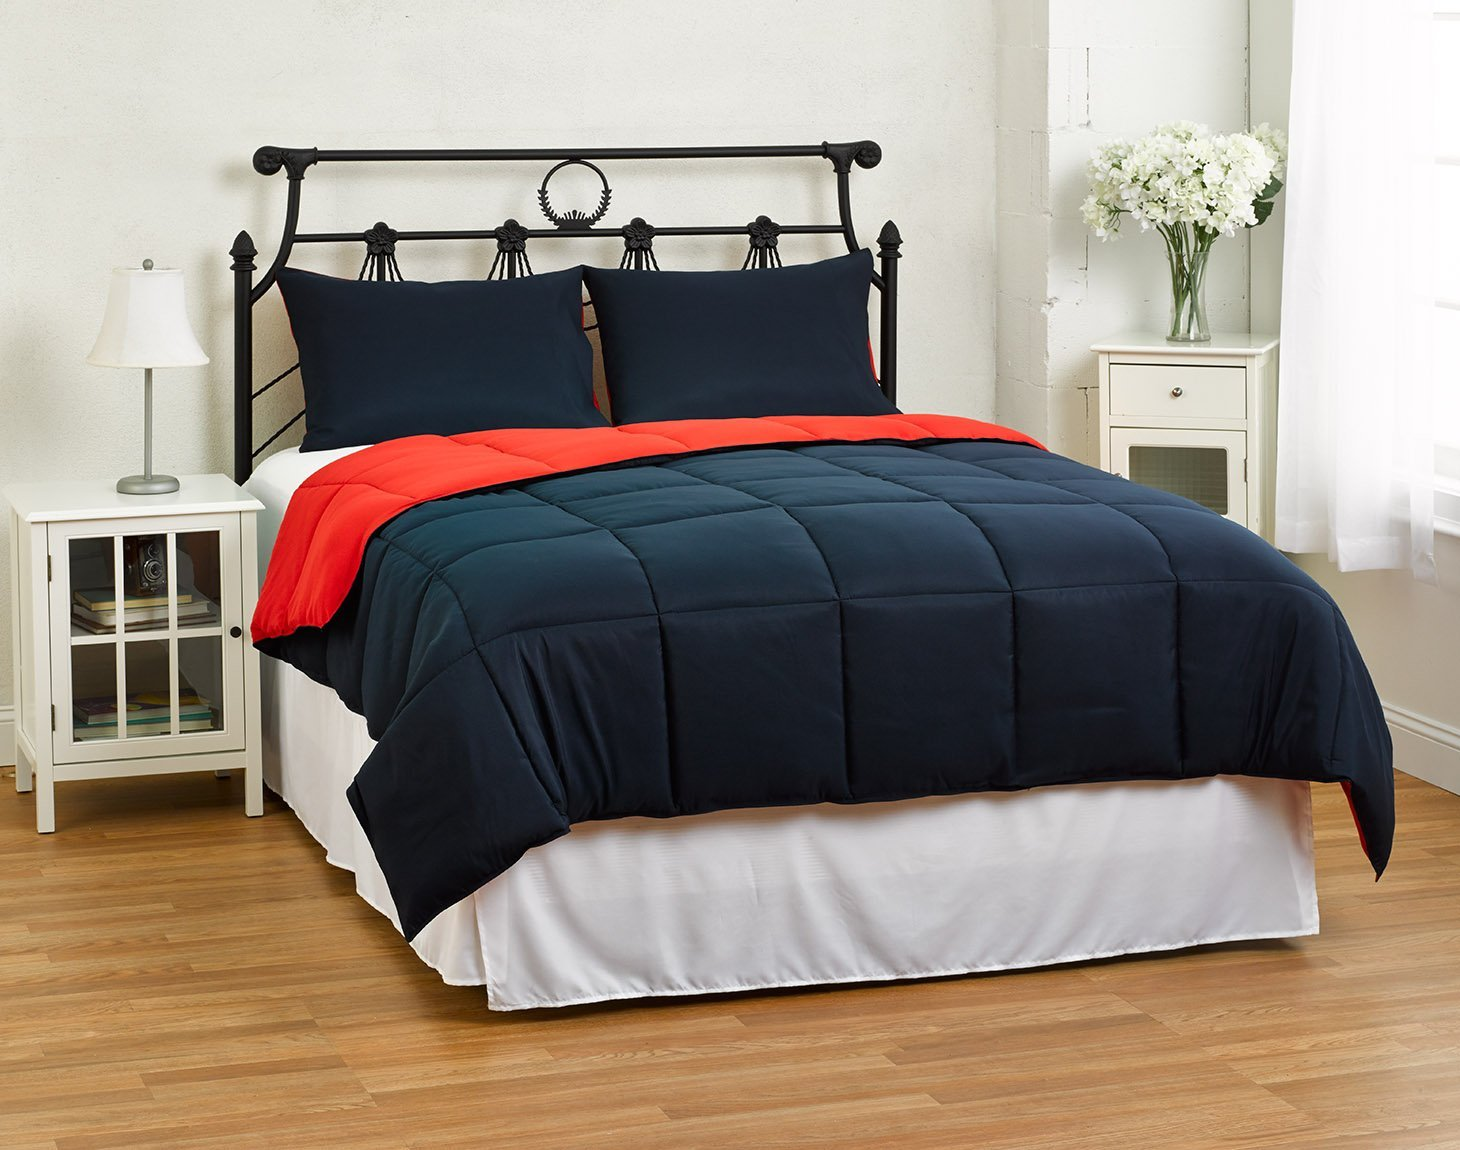 3 Piece Comforter Set, Full/Queen, Blue/Red